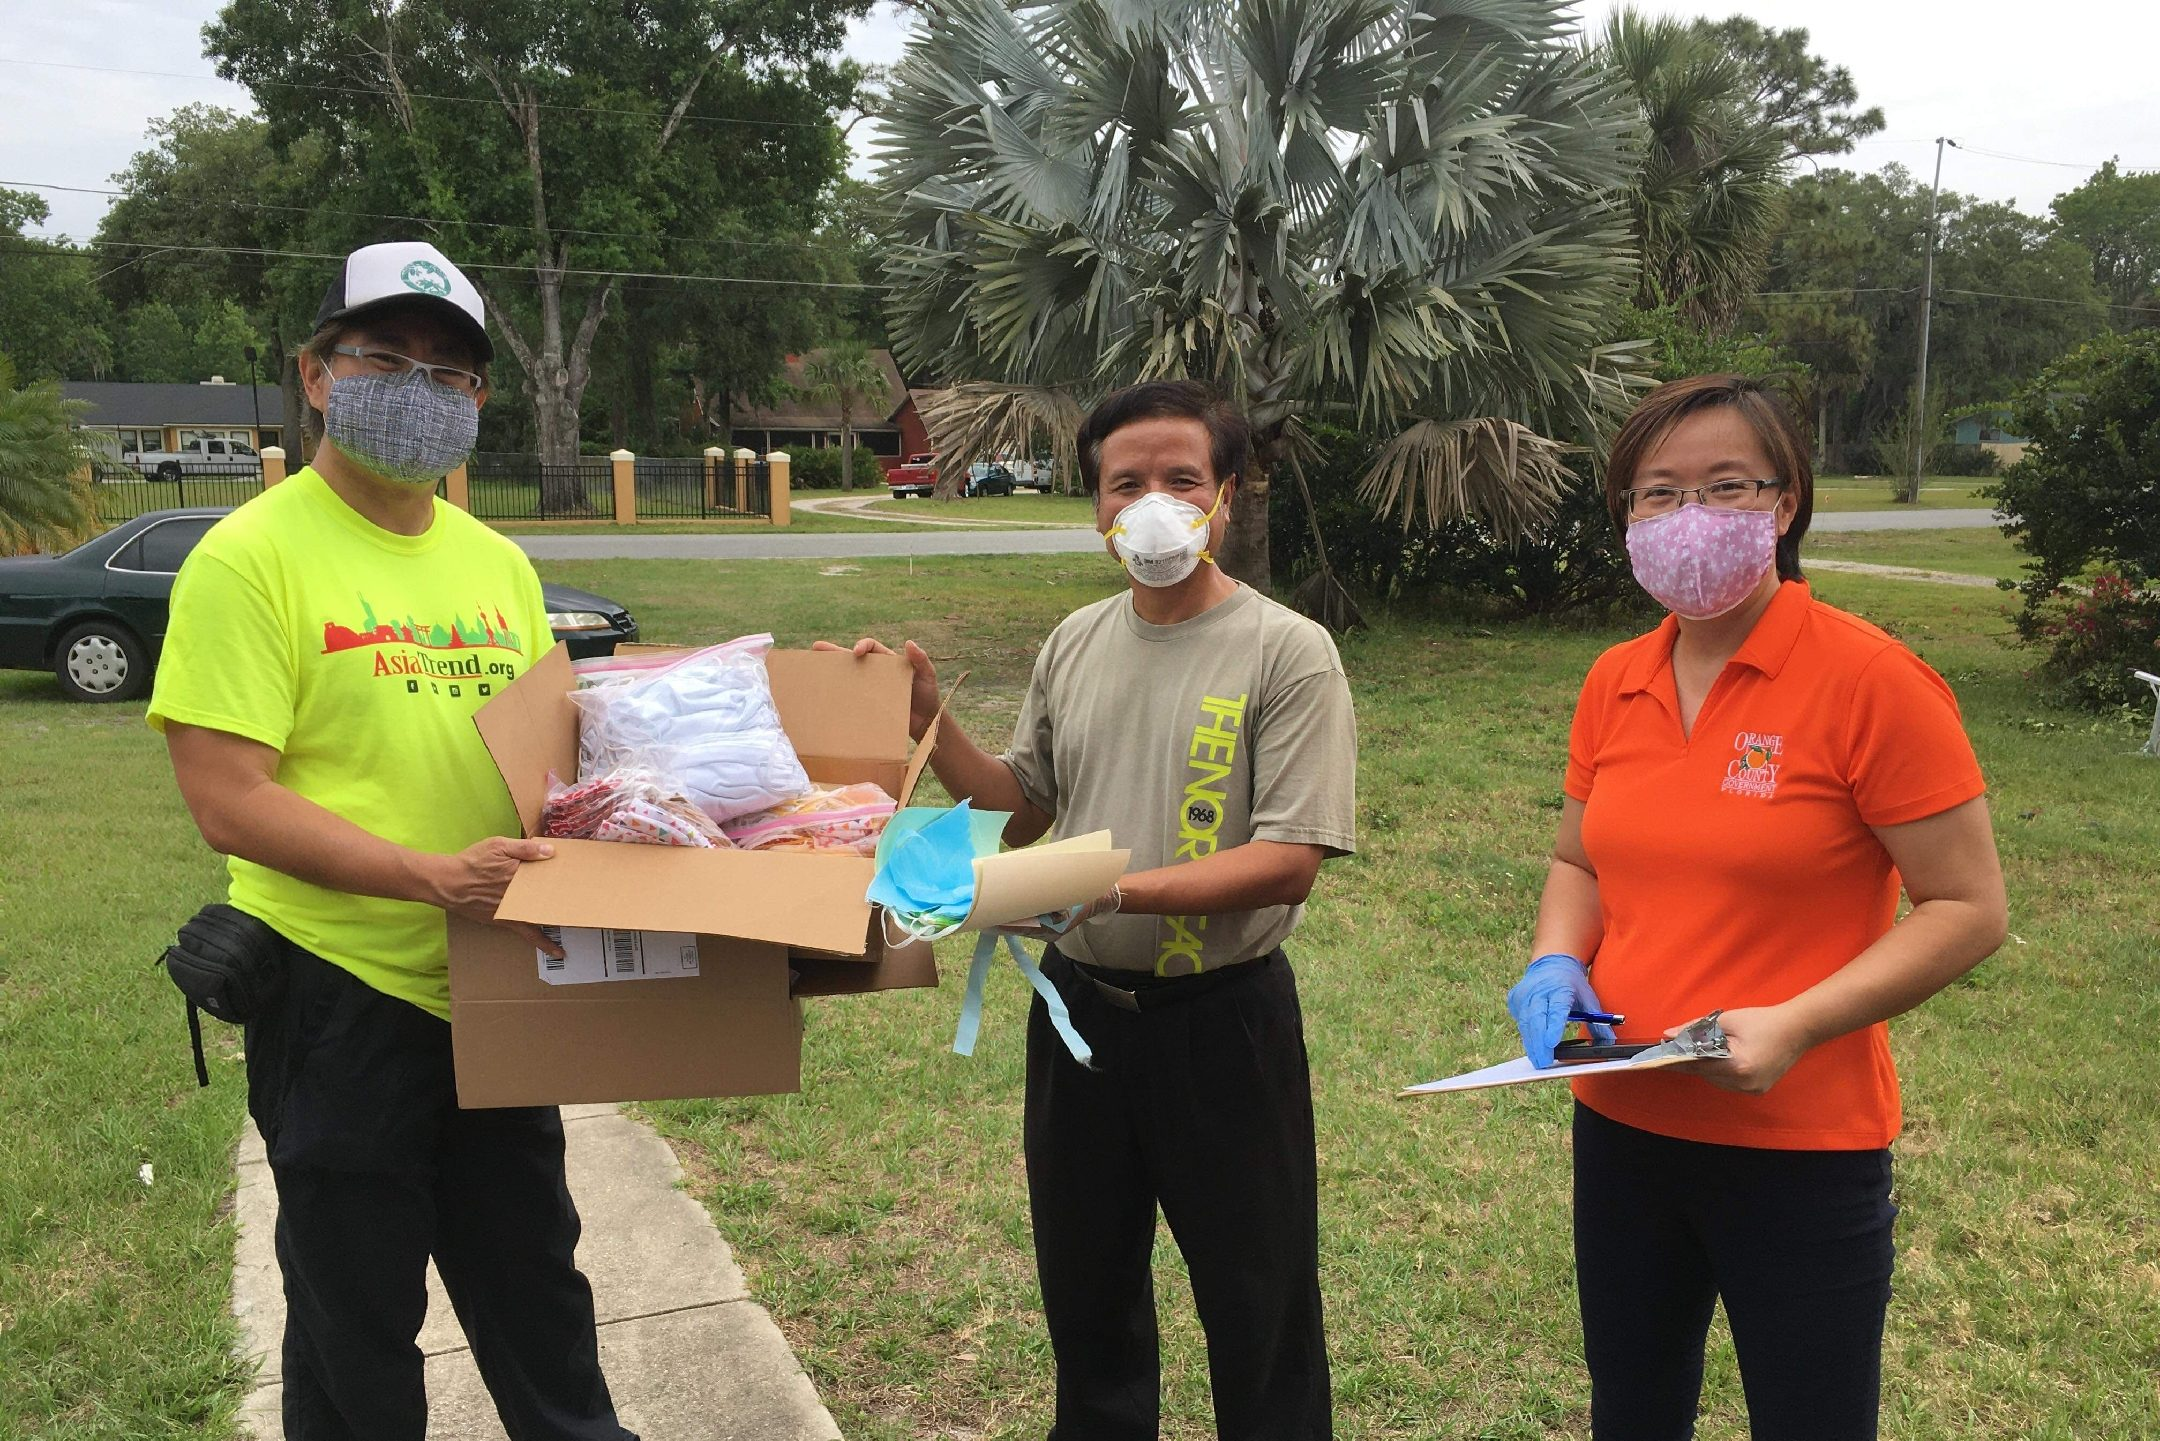 Three people wearing masks; one is handing a box of supplies to the other.